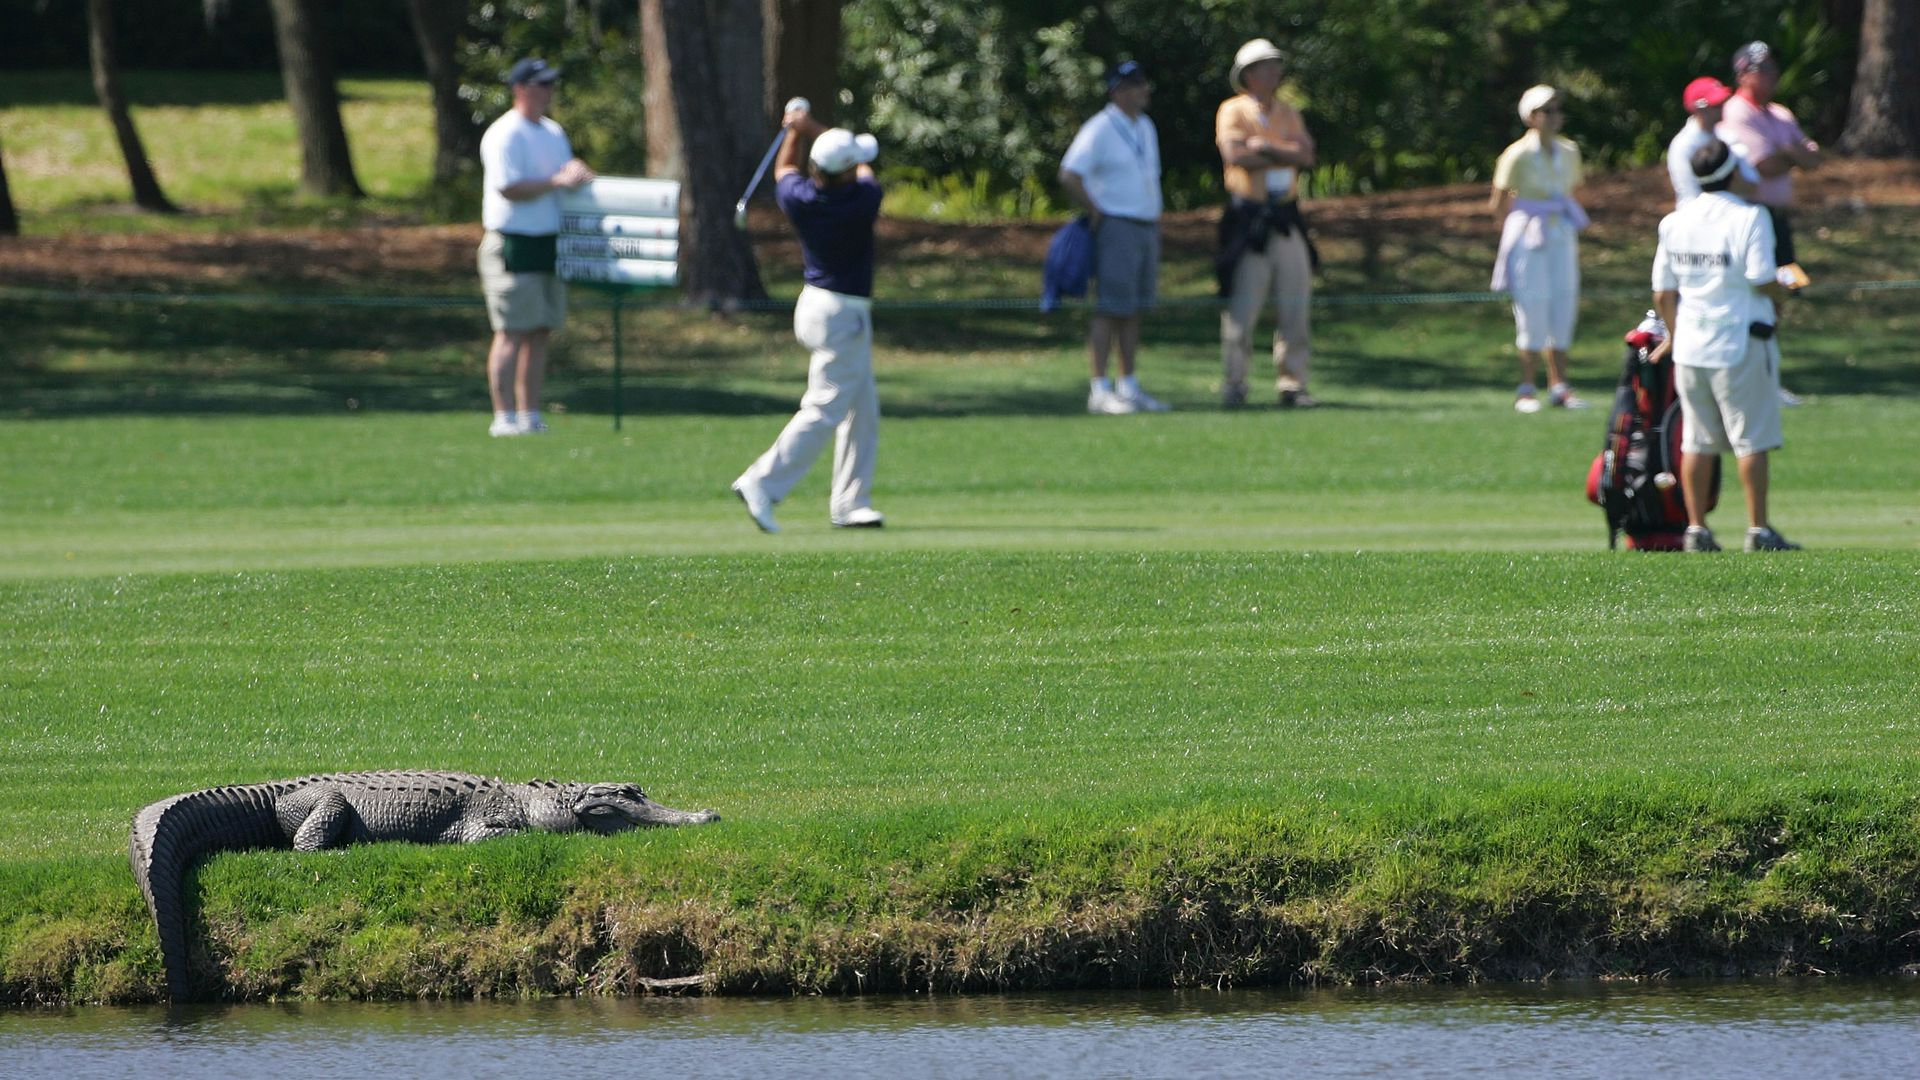 An alligator suns itself on a golf course